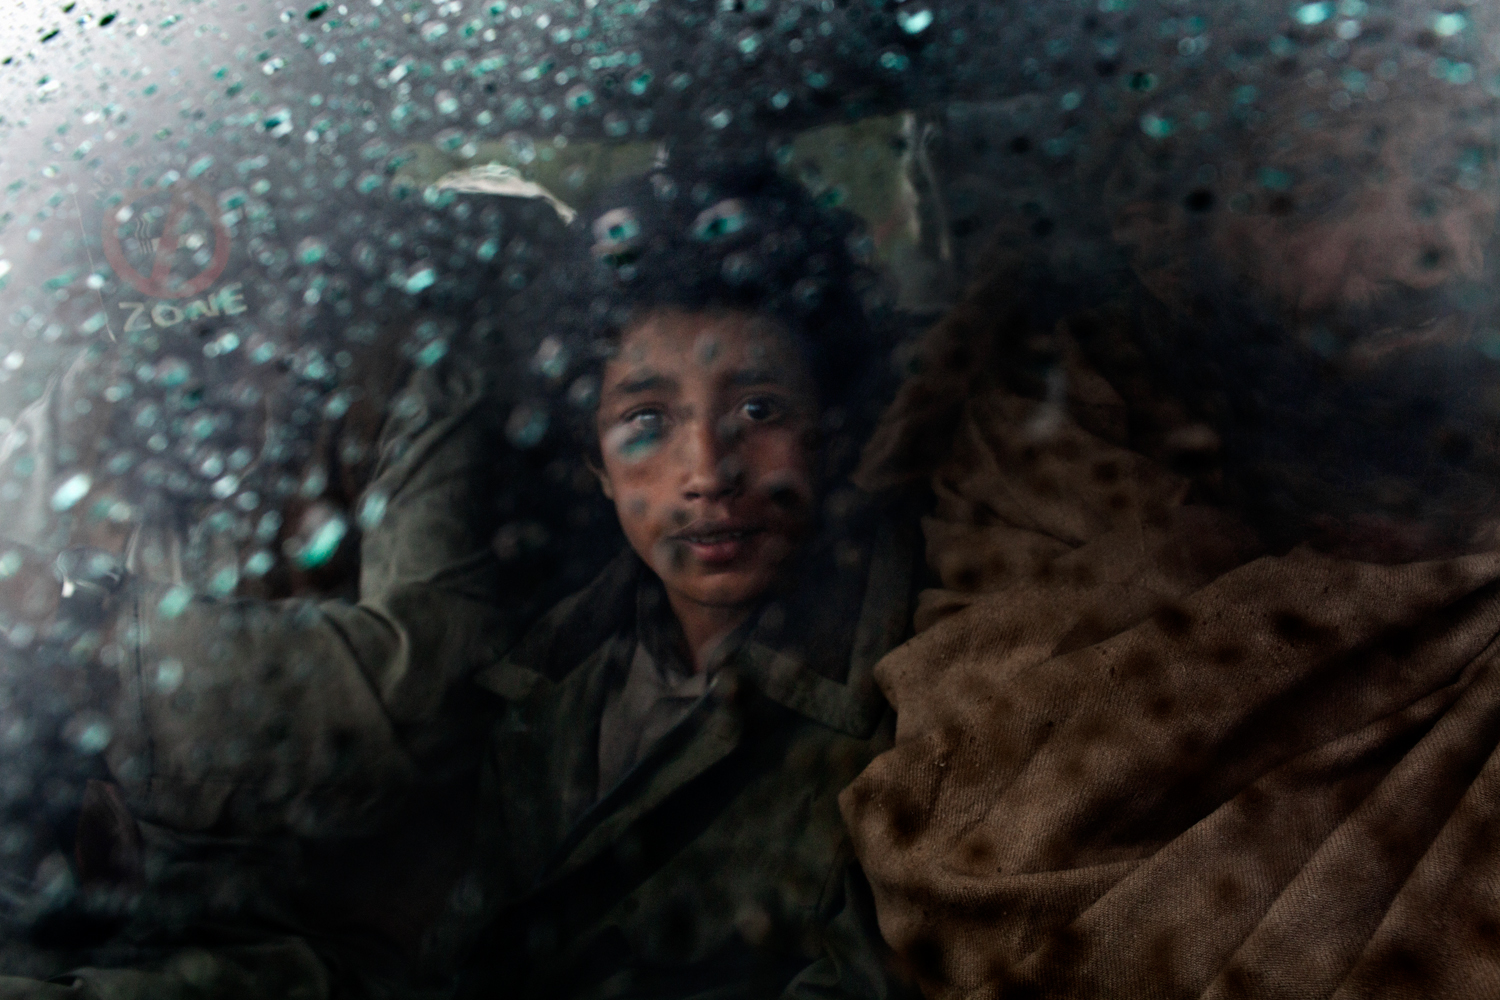 An Afghan boy at a checkpoint in the Korengal Valley, Kunar Province, Afghanistan.